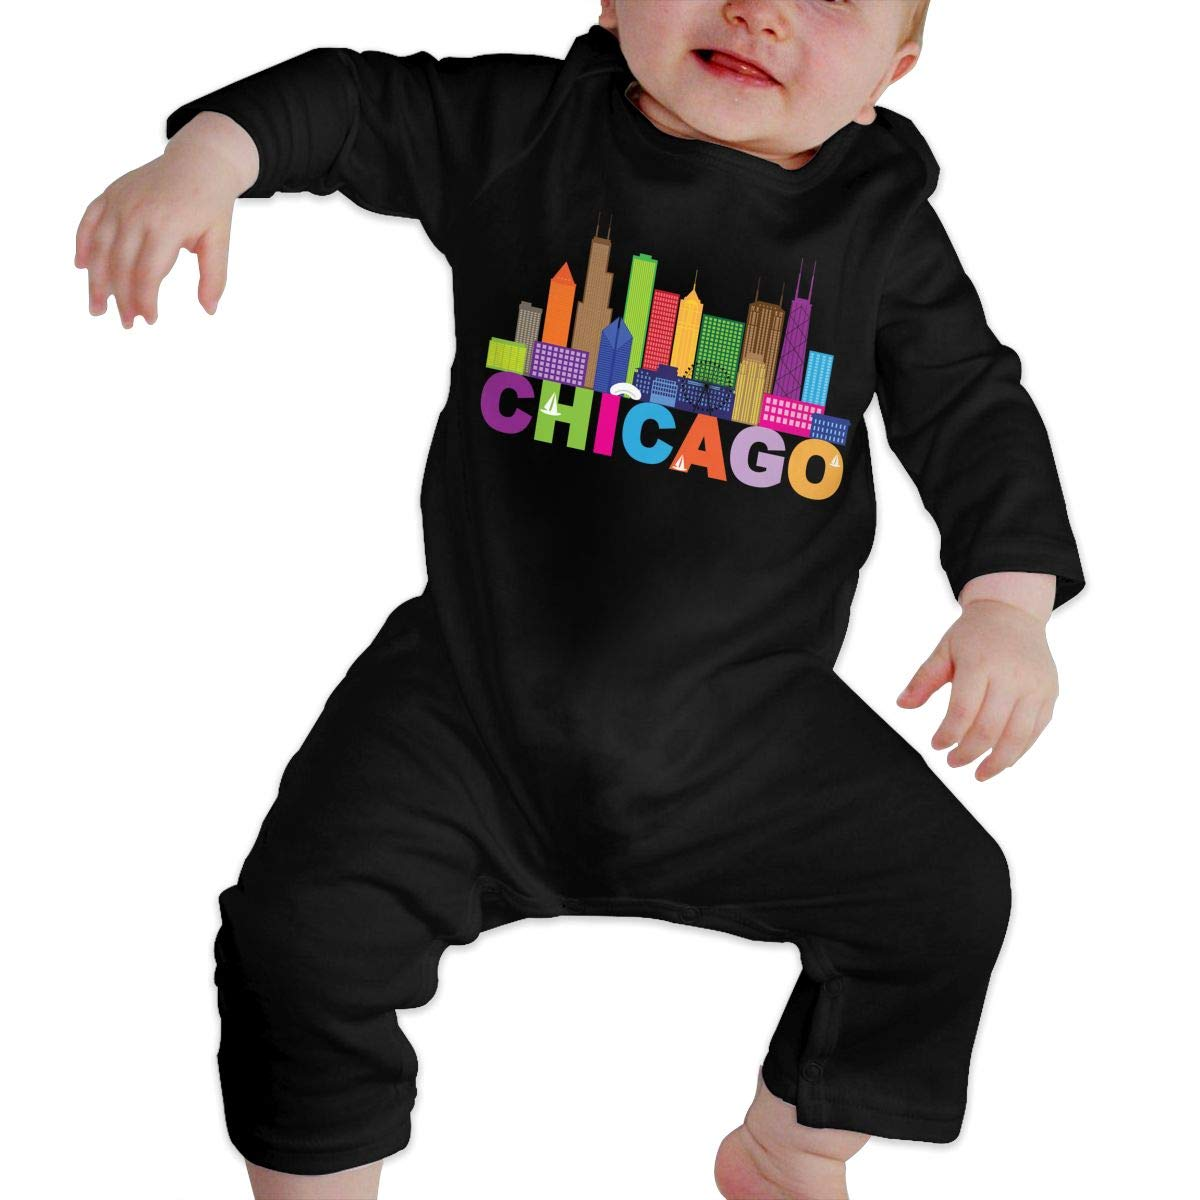 Unisex Baby Round Neck Long-Sleeve Solid Color Onesie Chicago City Silhouette Jumpsuits Sleepwear